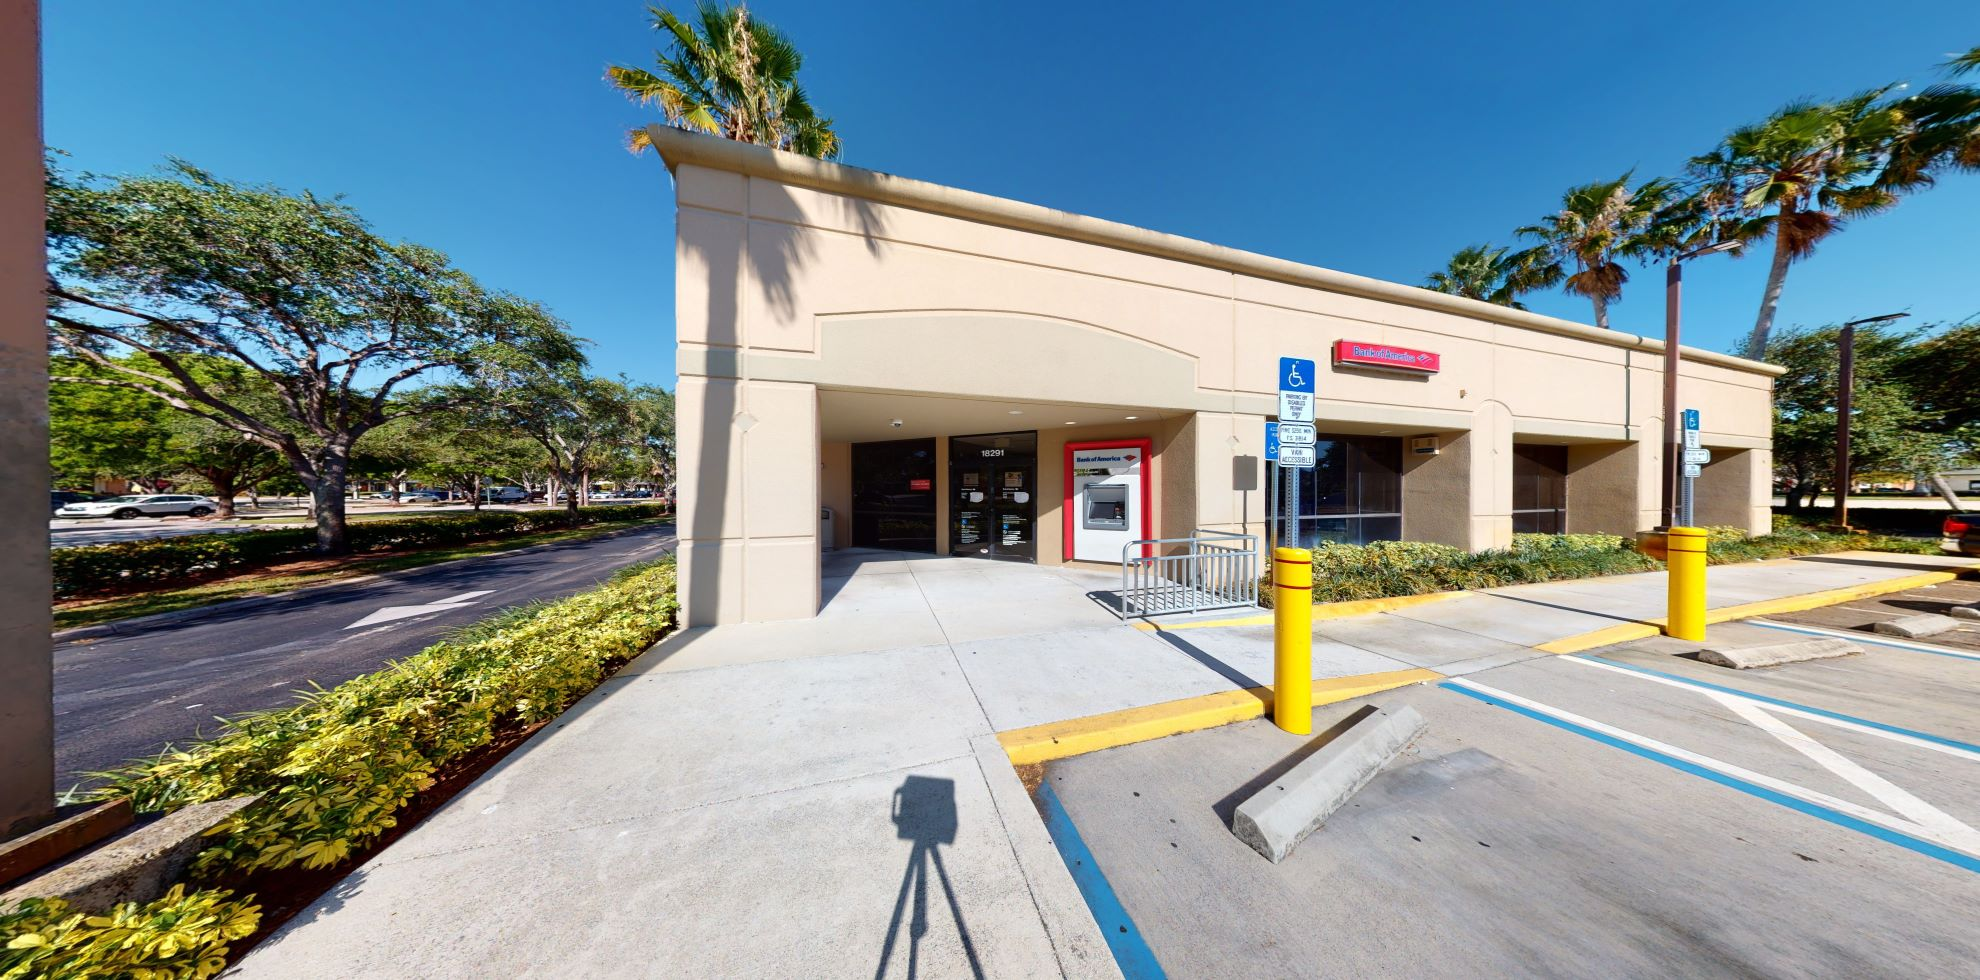 Bank of America financial center with drive-thru ATM   18291 Pines Blvd, Pembroke Pines, FL 33029